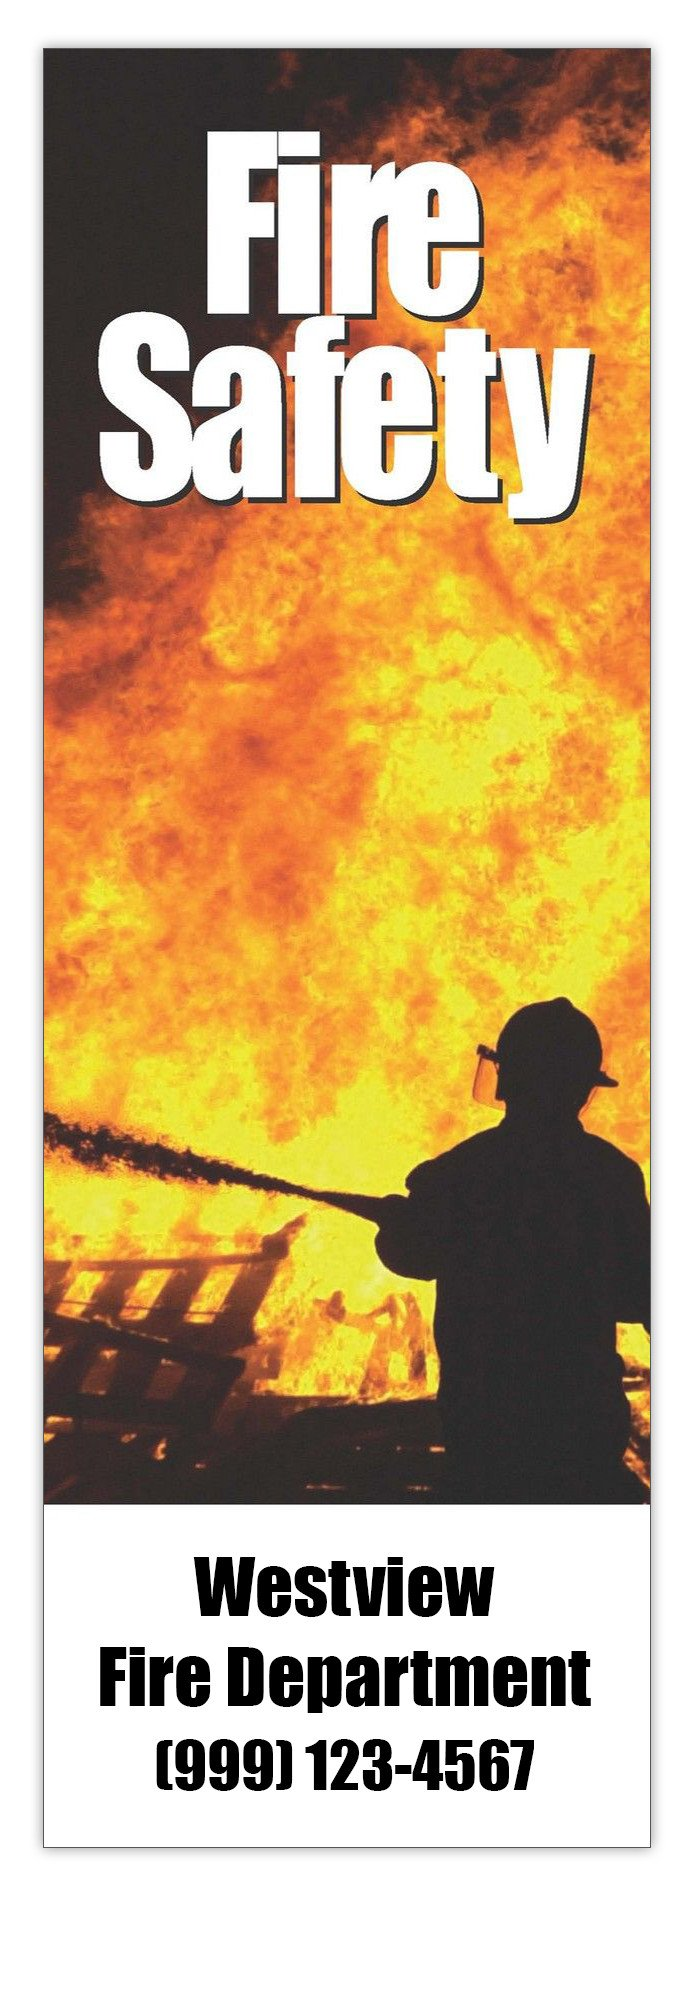 Fire Safety Bookmarks in Bulk (Qty of 250) - Promotional Item - Customize with your Information - Great for Mailings